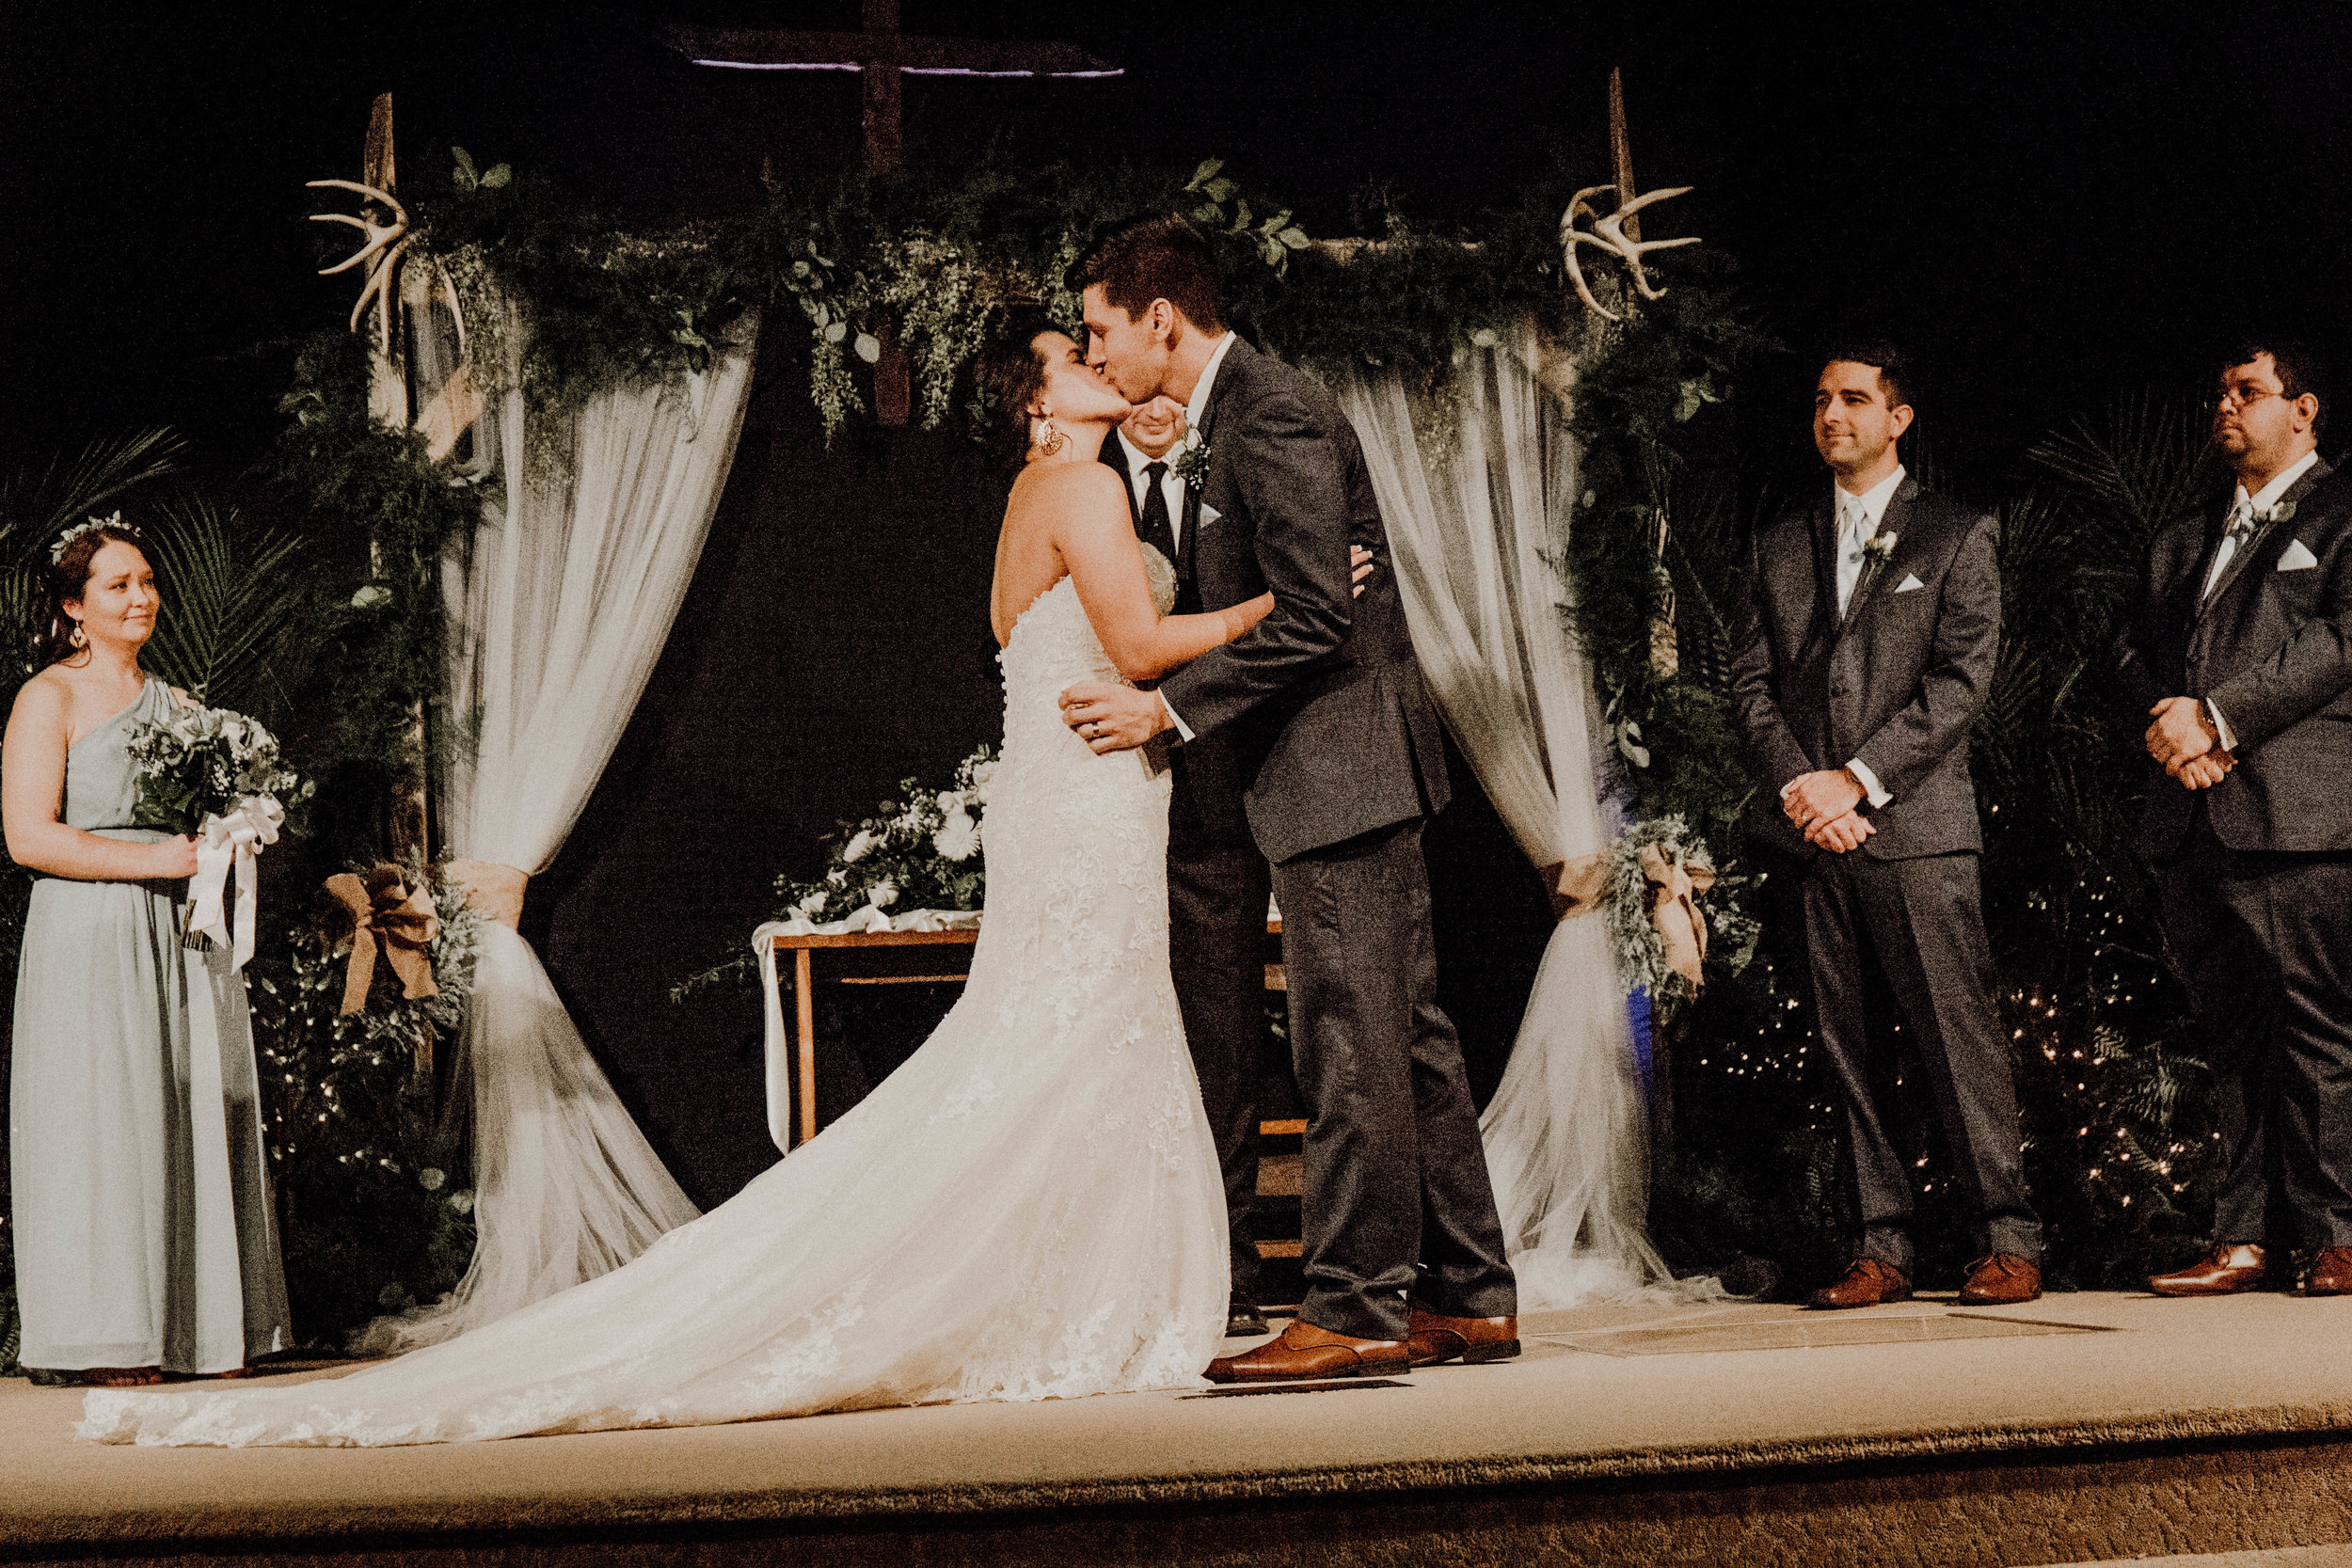 wedding (13 of 38).jpg